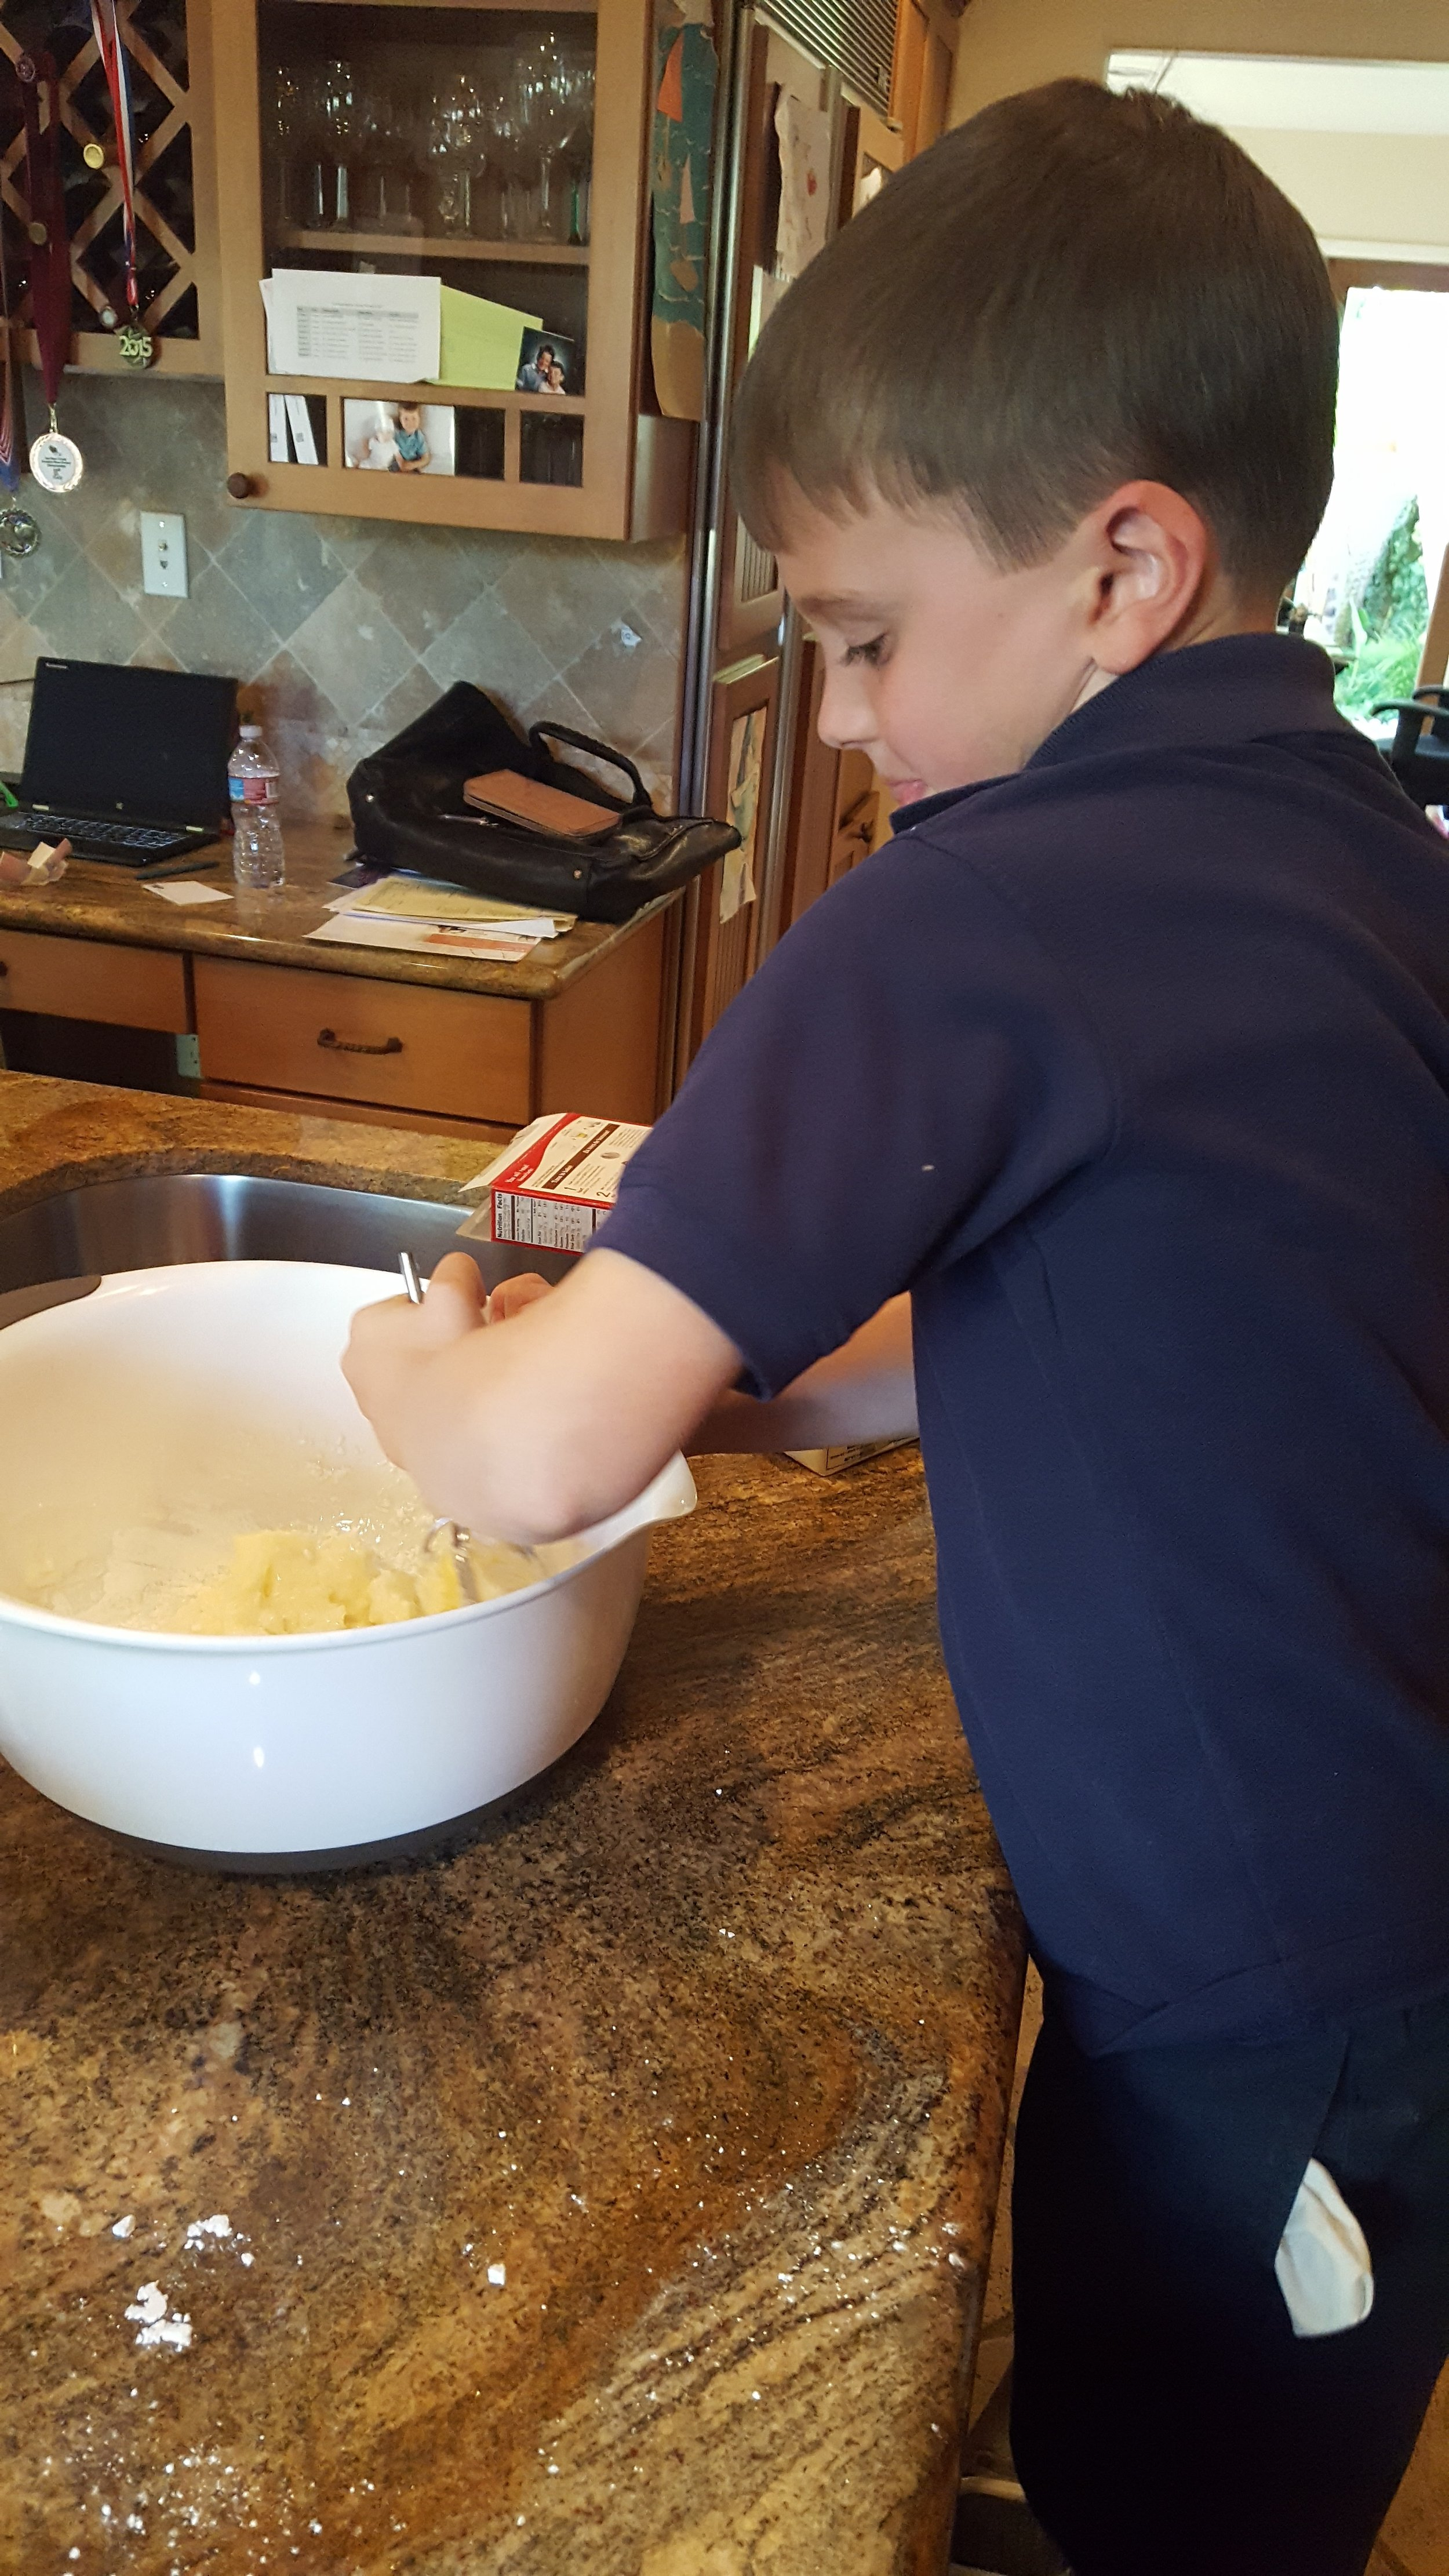 Yes, he's making a dessert here (just look at that butter) but the key is getting them involved in the preparation.